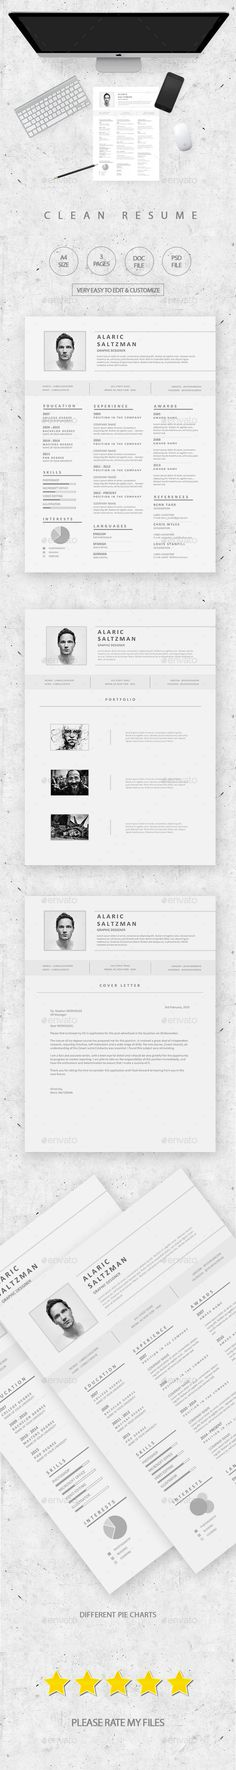 Super Clean Resume By Leaflove A Simple Clean Resume Template